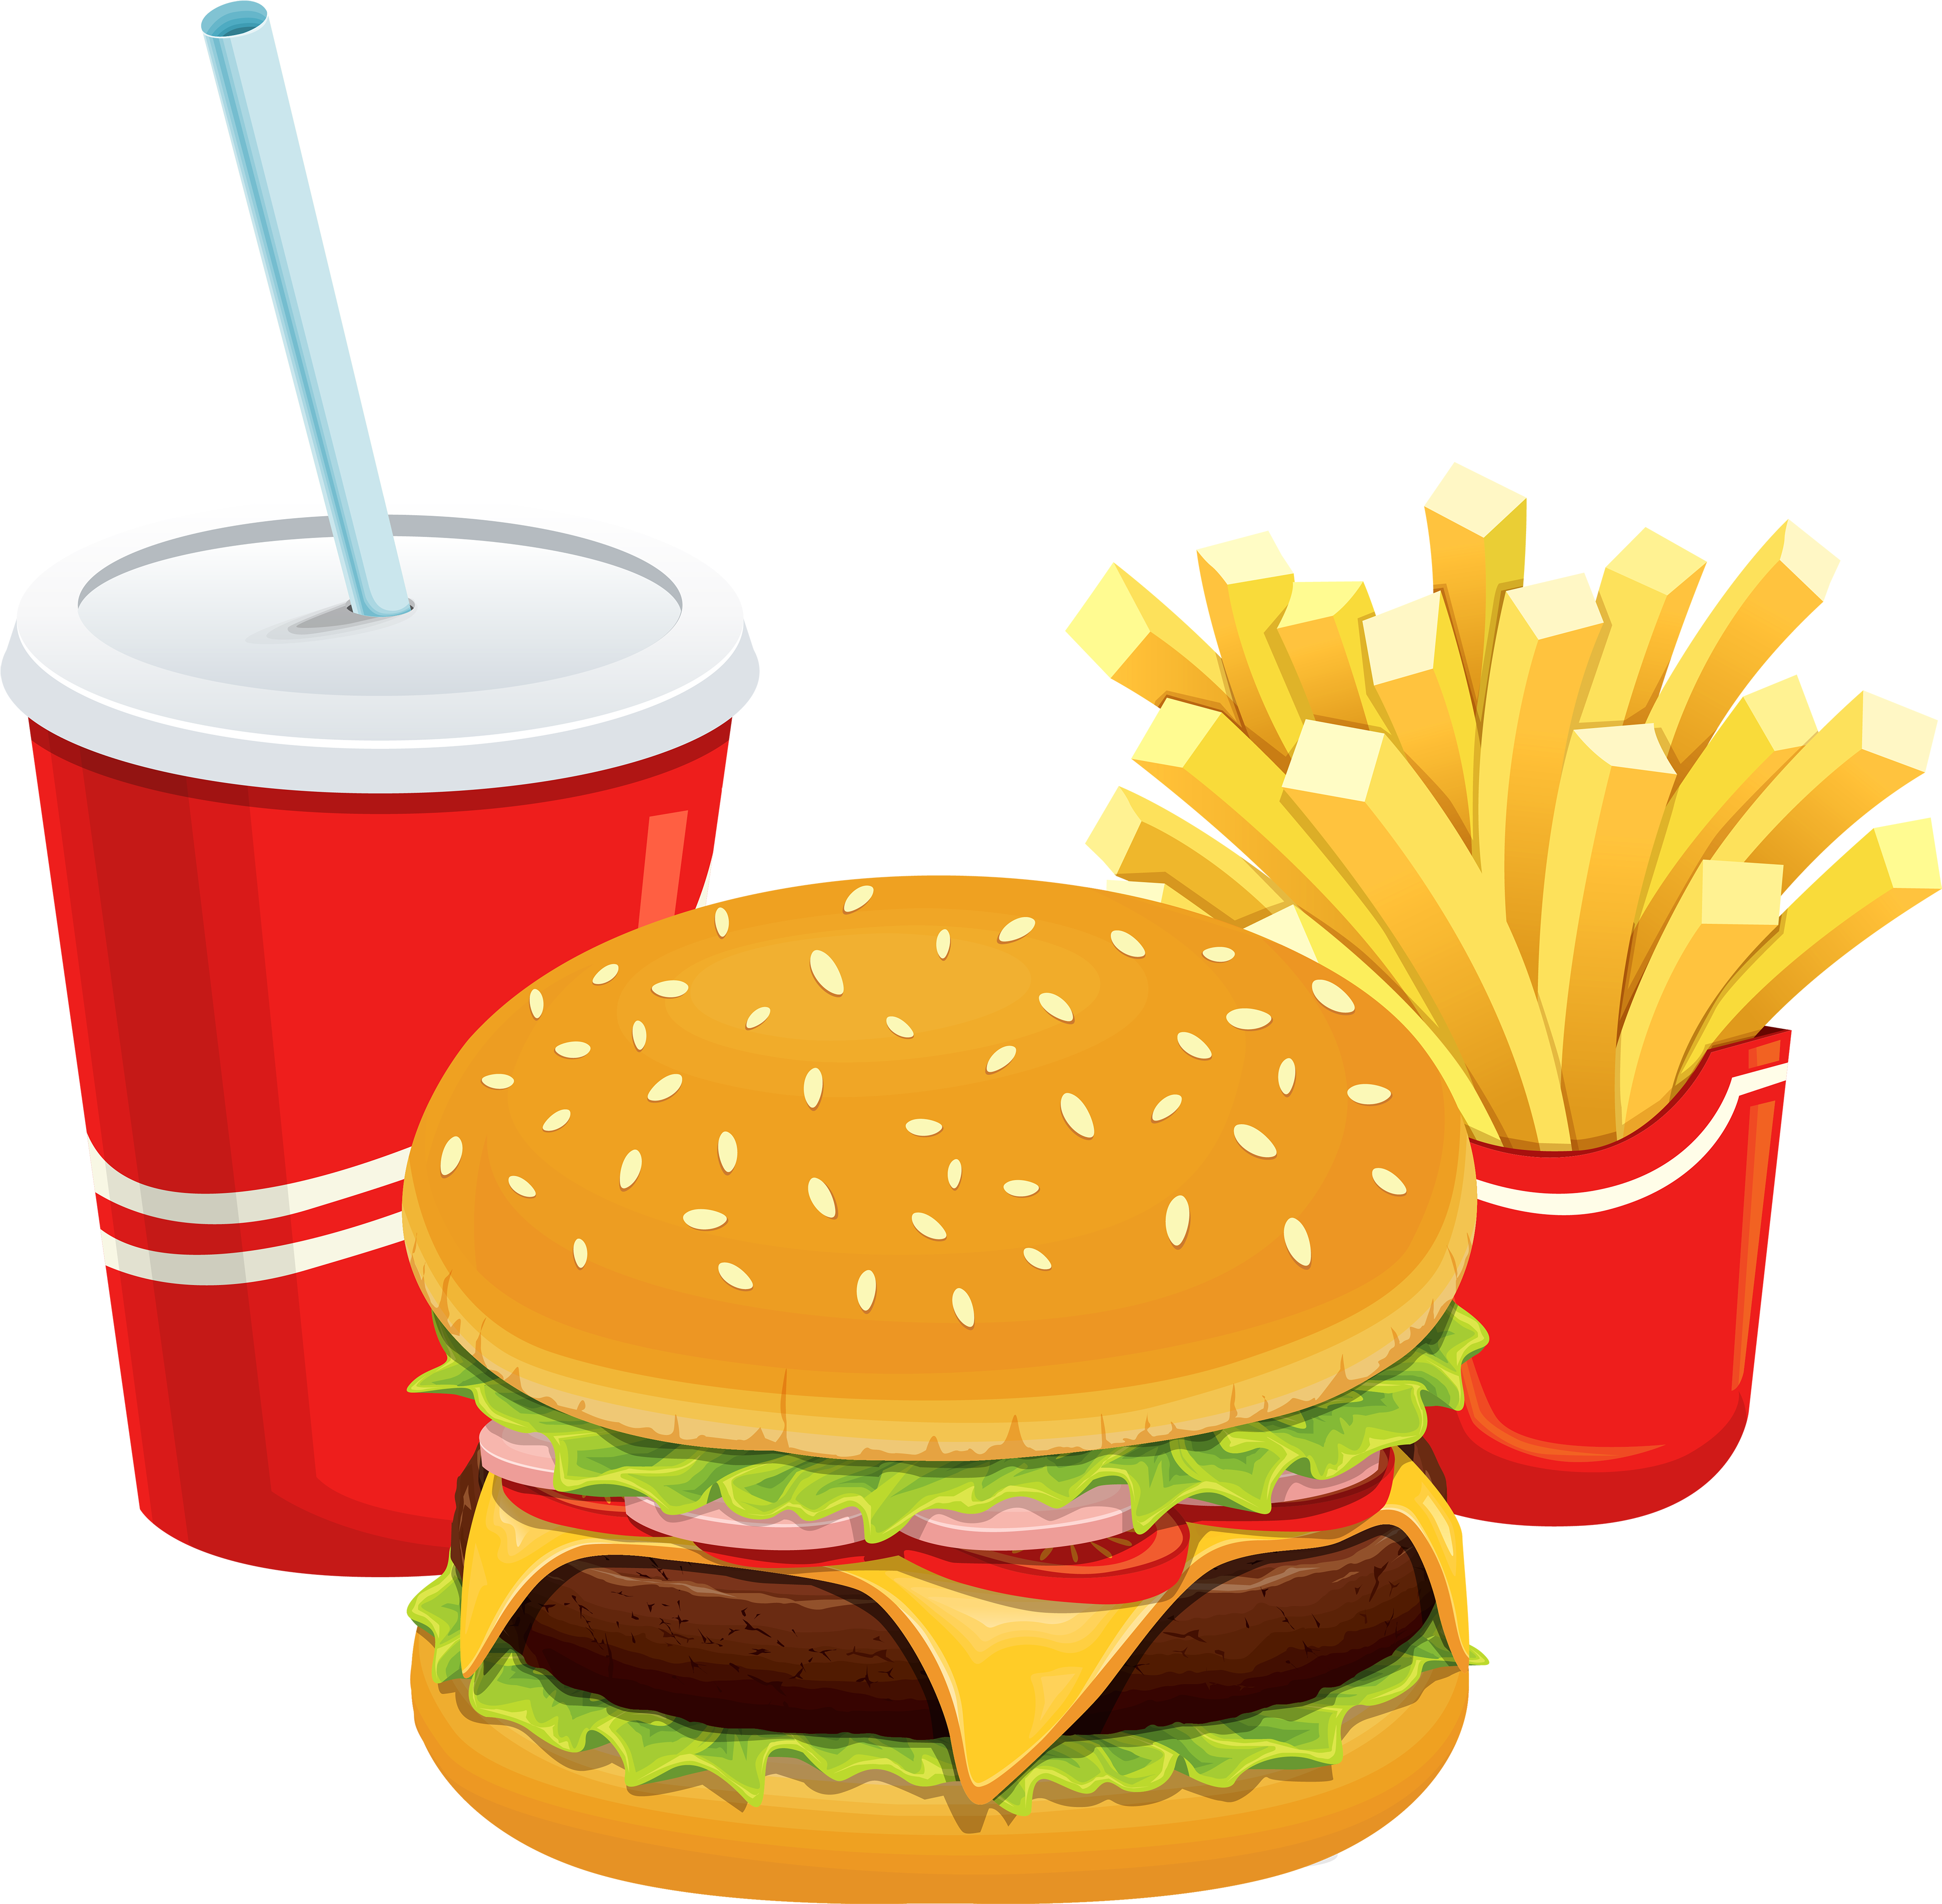 Clipart Of Restaurant, Breakfast And Foods.